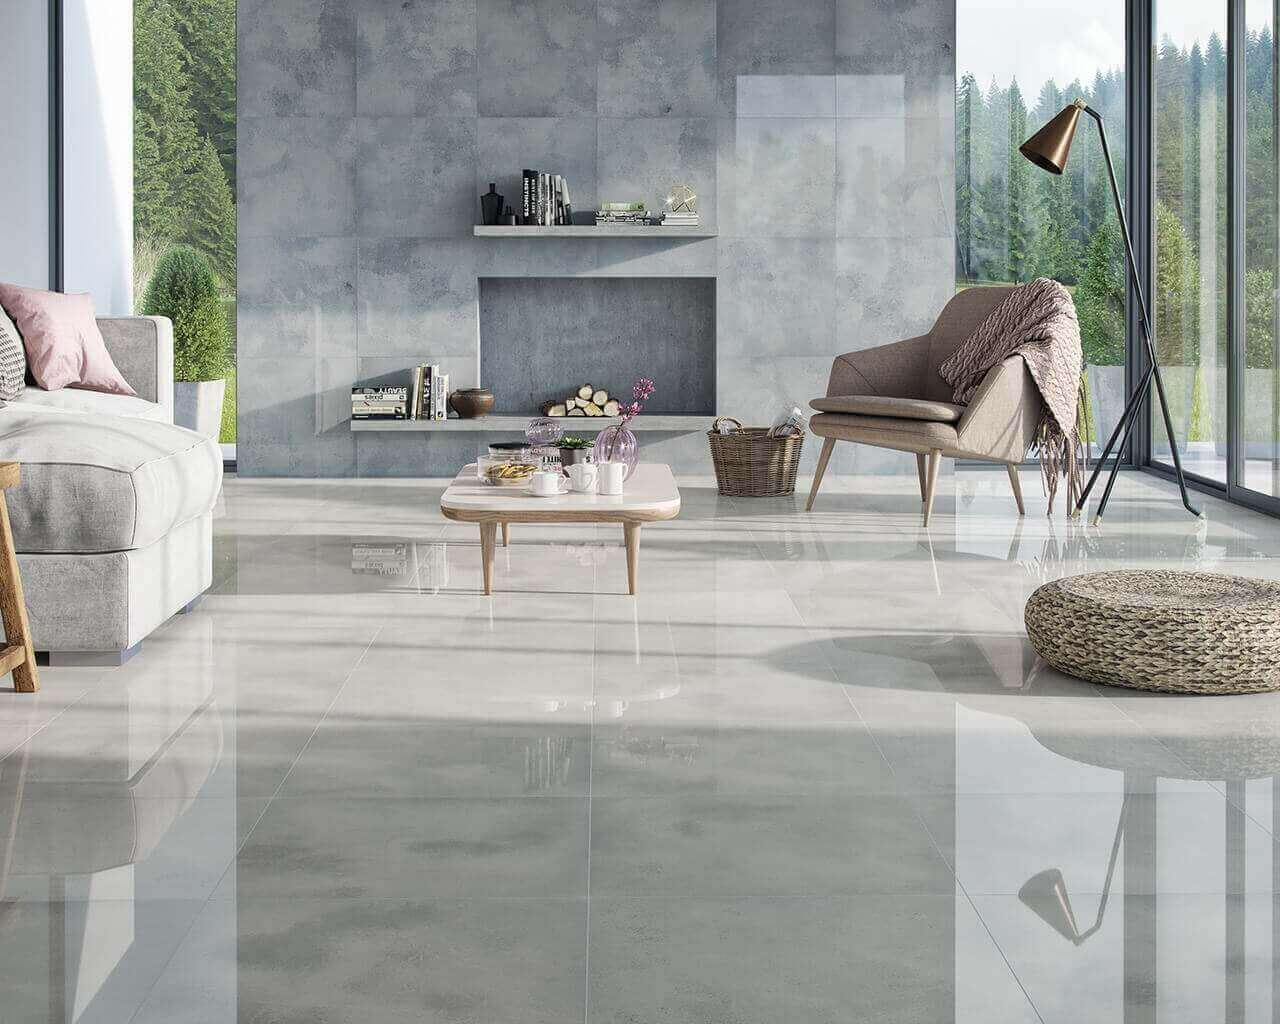 How To Lay Ceramic Tiles Overview Of The Possible